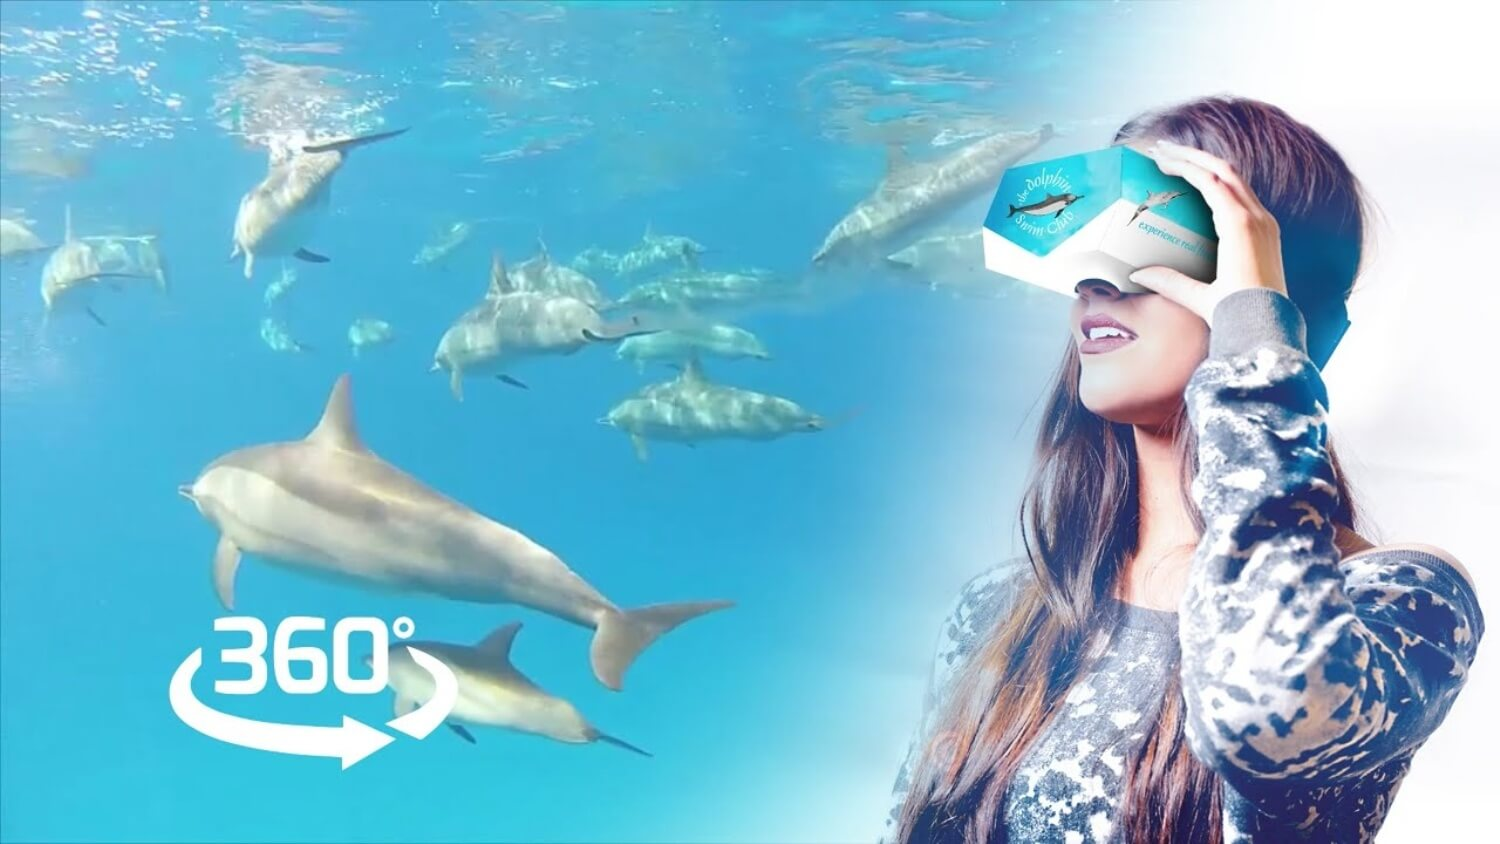 This New VR Experience Offers Cruelty-Free Swimming With Dolphins